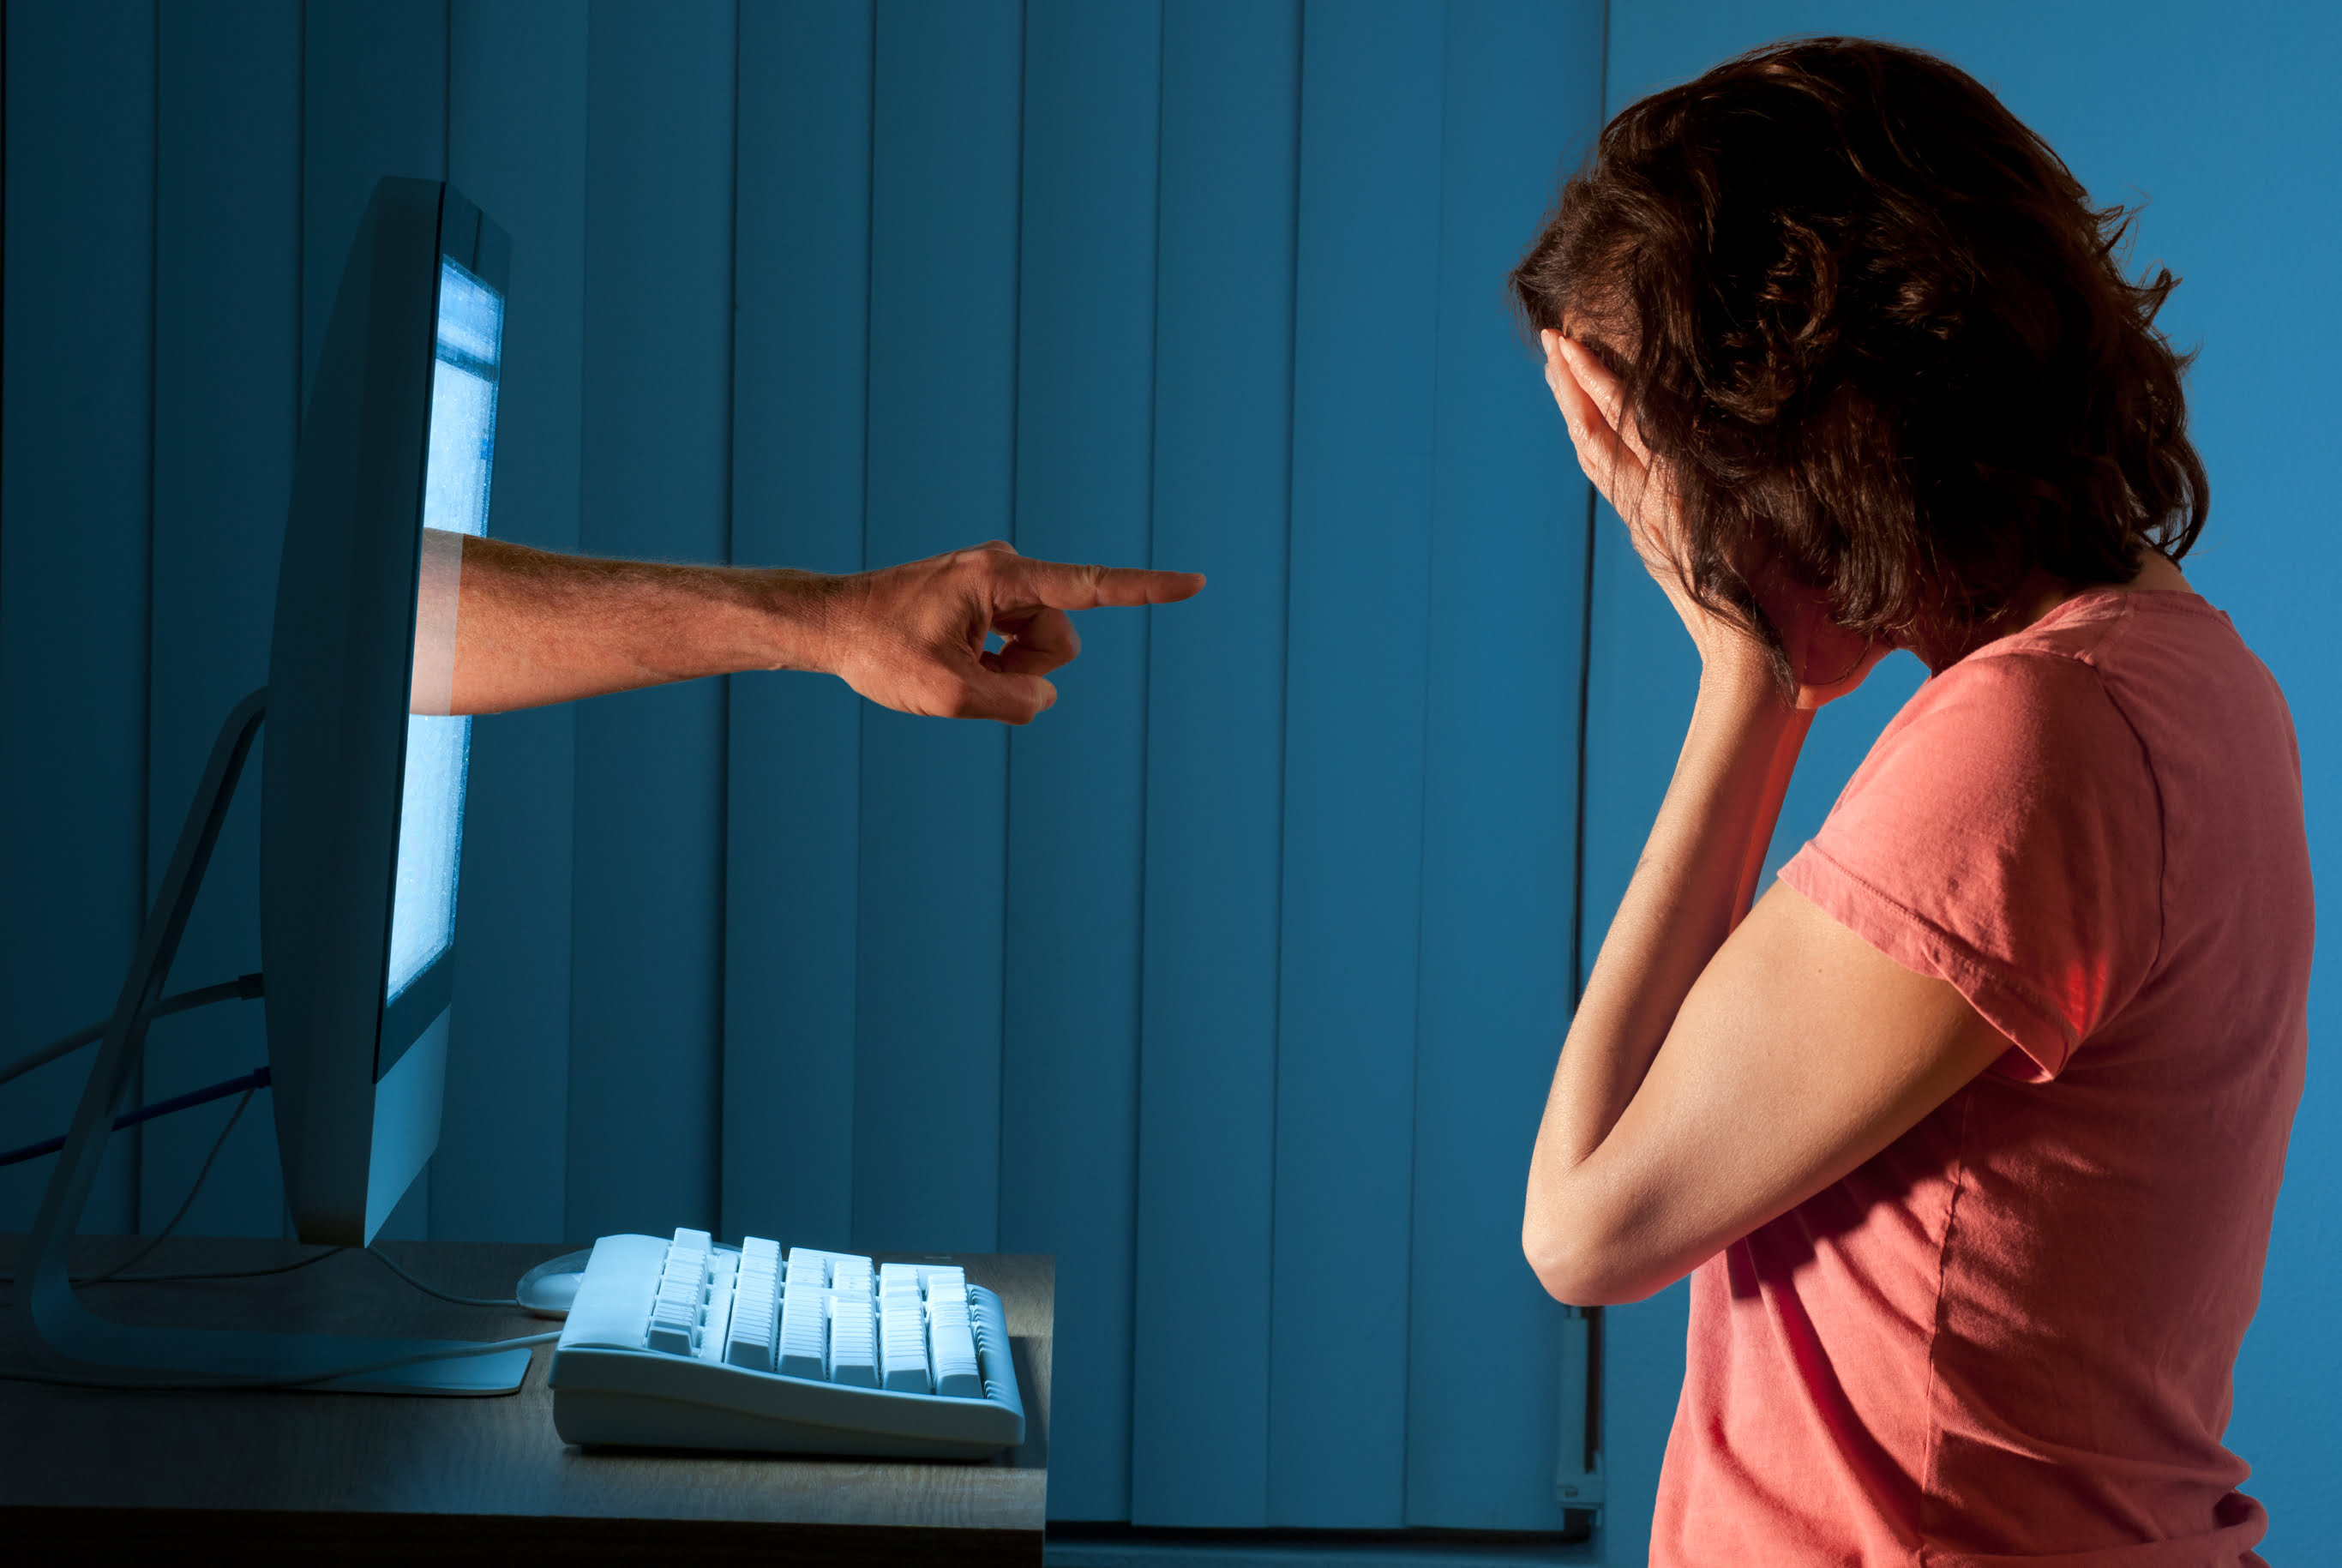 cyber bullying on twitter